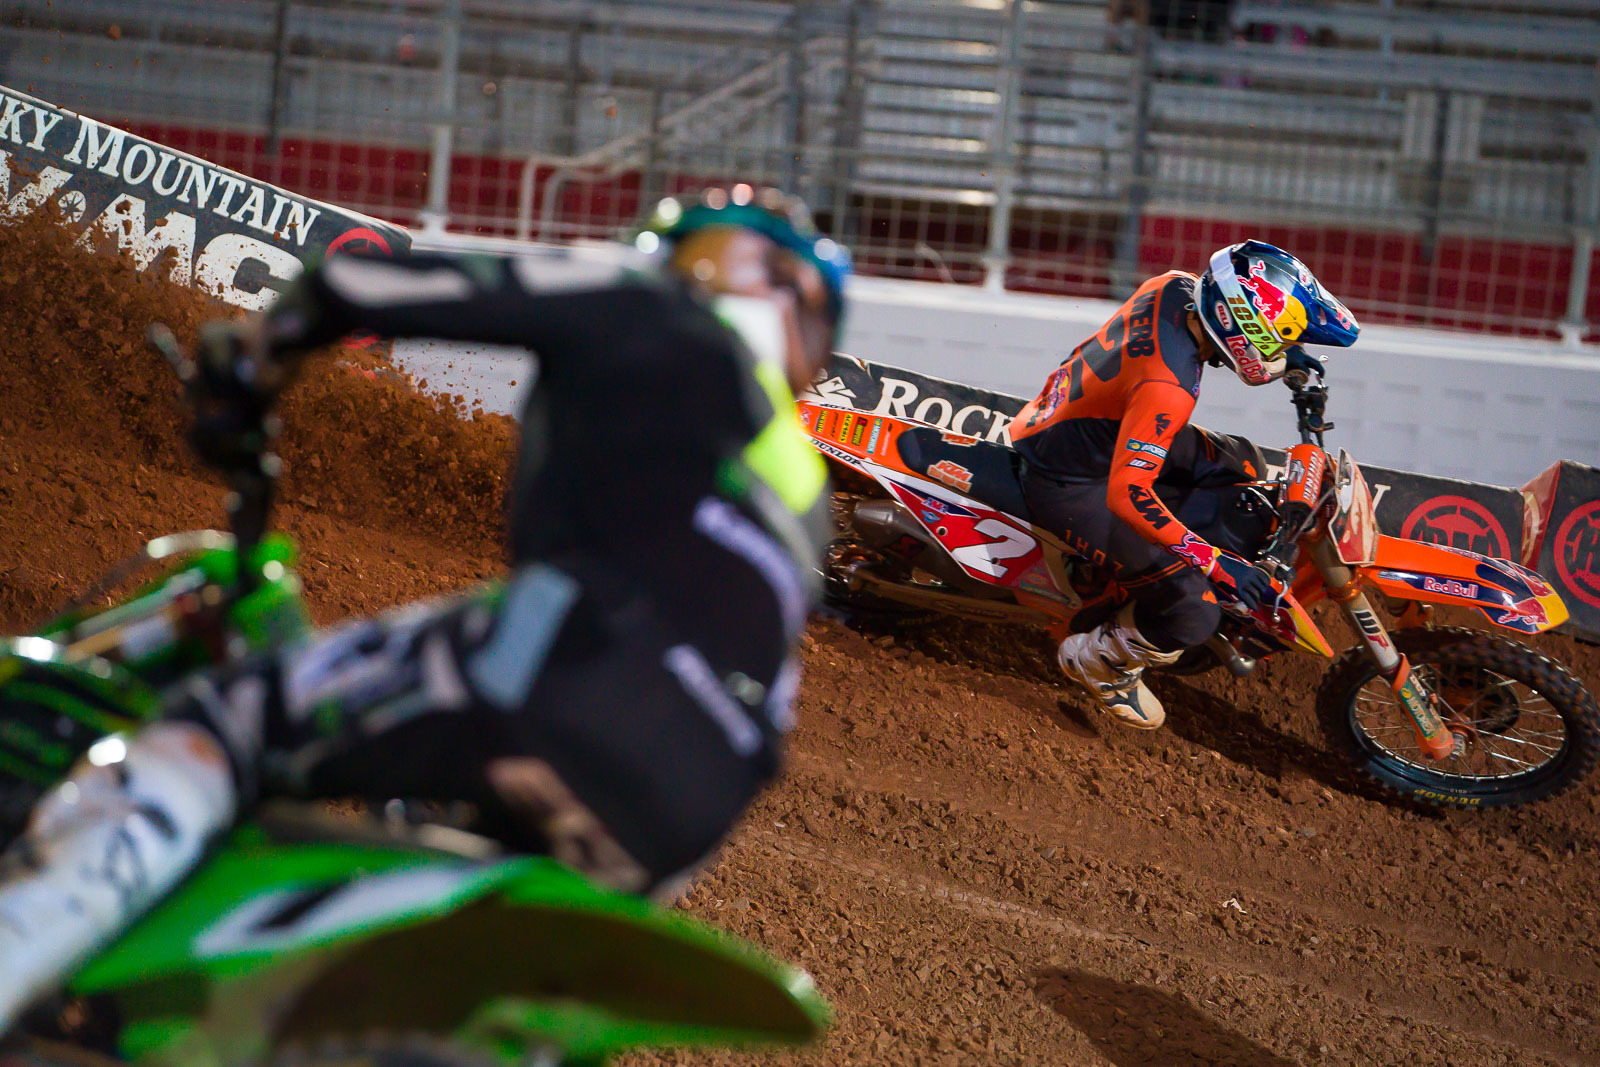 2021-ATLANTA-THREE-SUPERCROSS_KICKSTART_1001